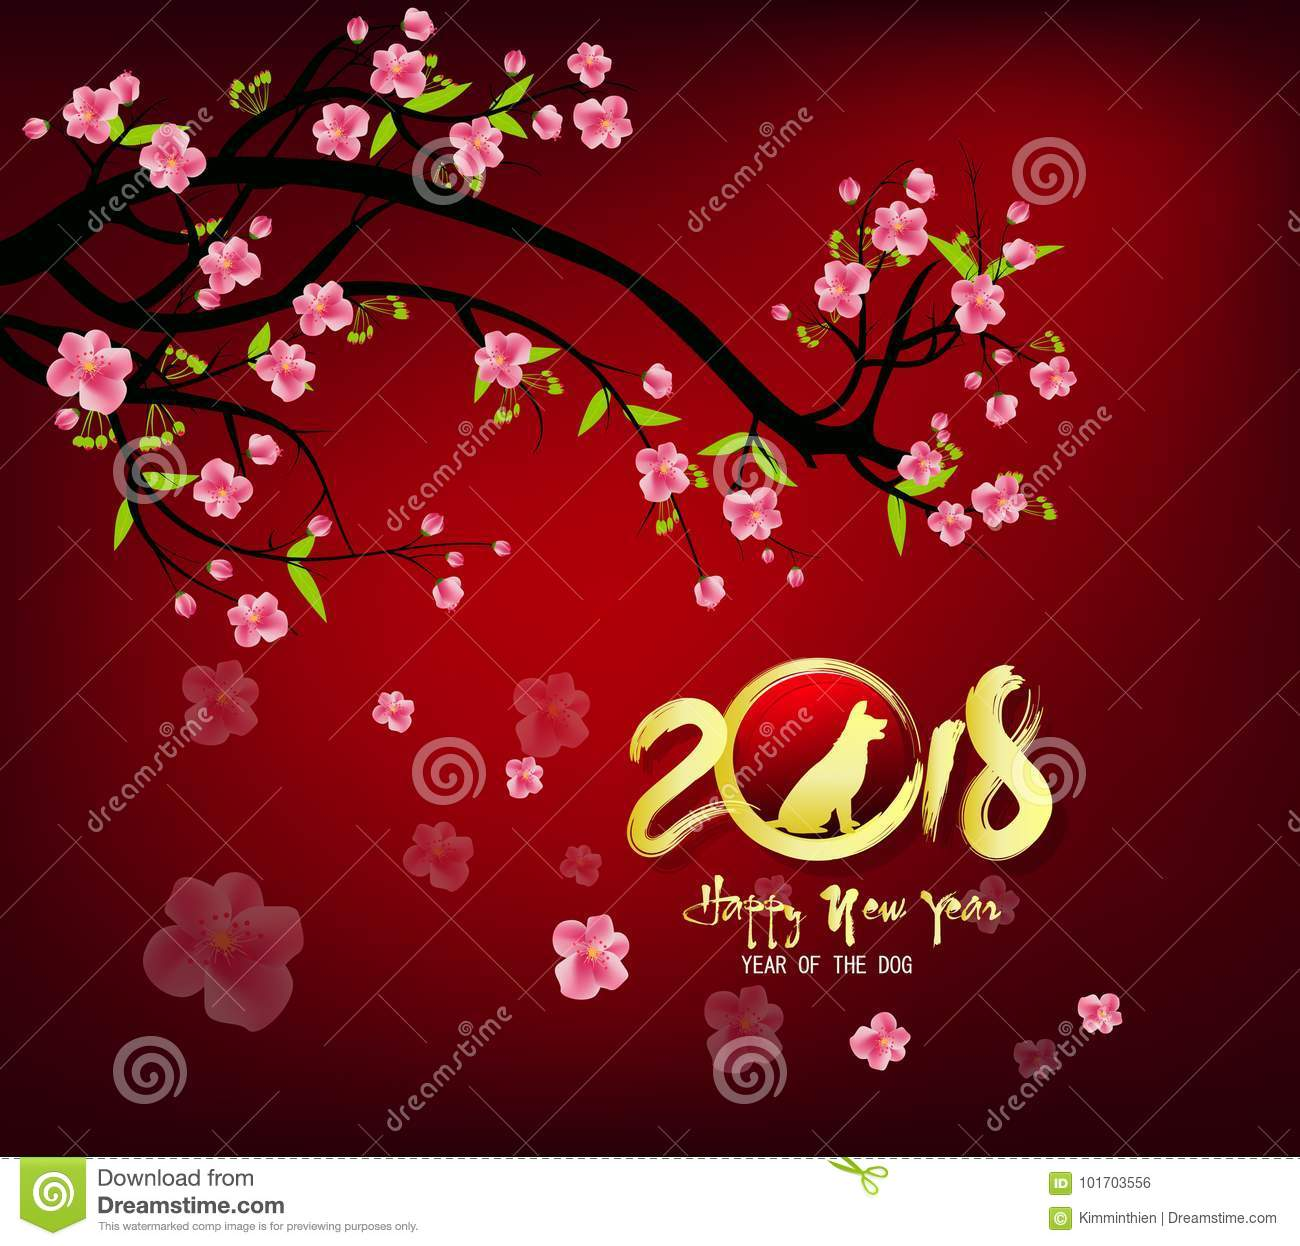 Happy new year 2018 greeting card chinese new year of ther dog royalty free vector download happy new year 2018 greeting card chinese new year of ther dog stock vector m4hsunfo